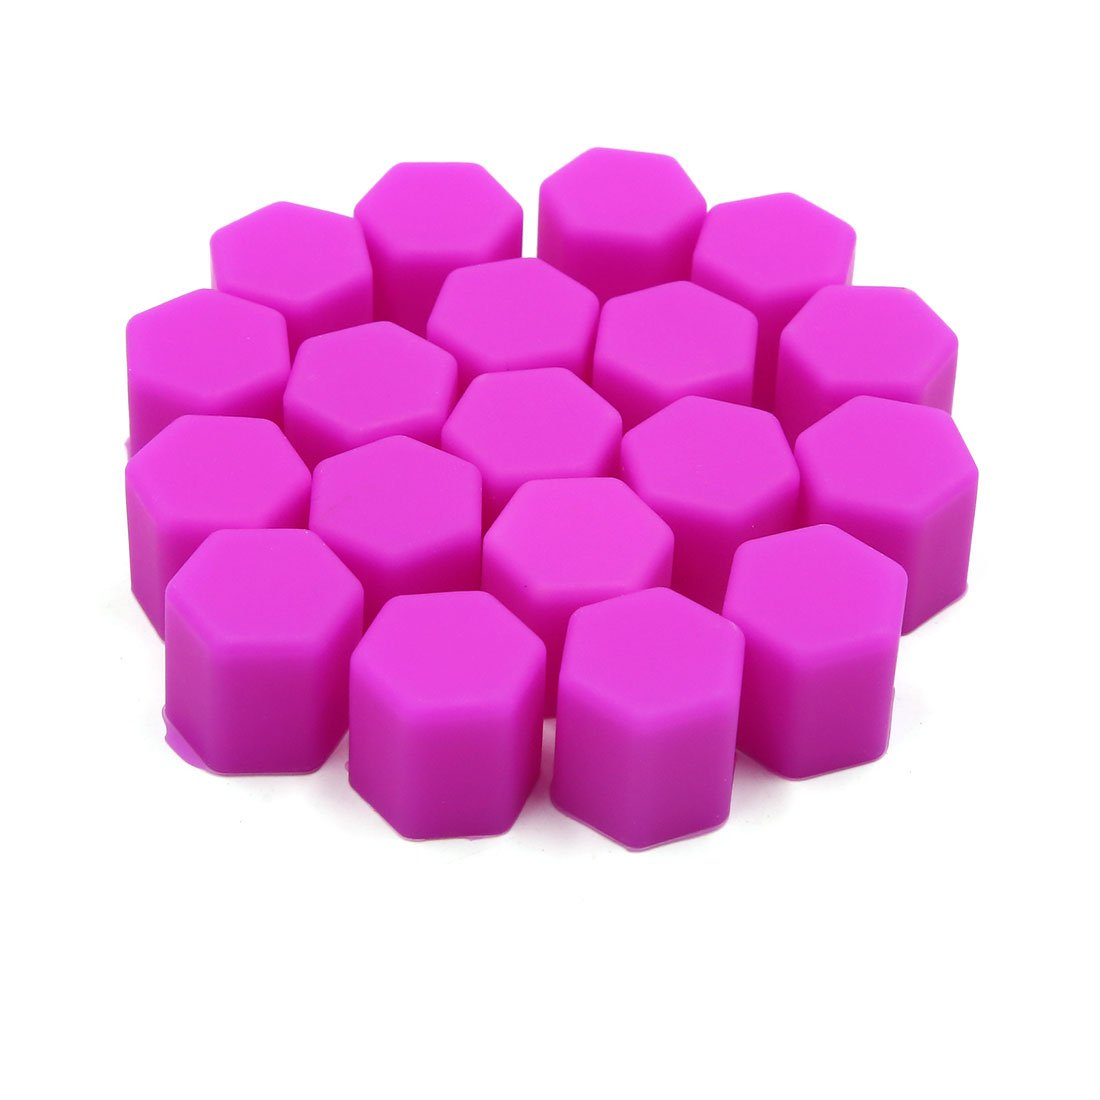 uxcell 20pcs 15mm Rubber Car Wheel Tire Tyre Nut Screw Cover Caps Hub Protector Purple